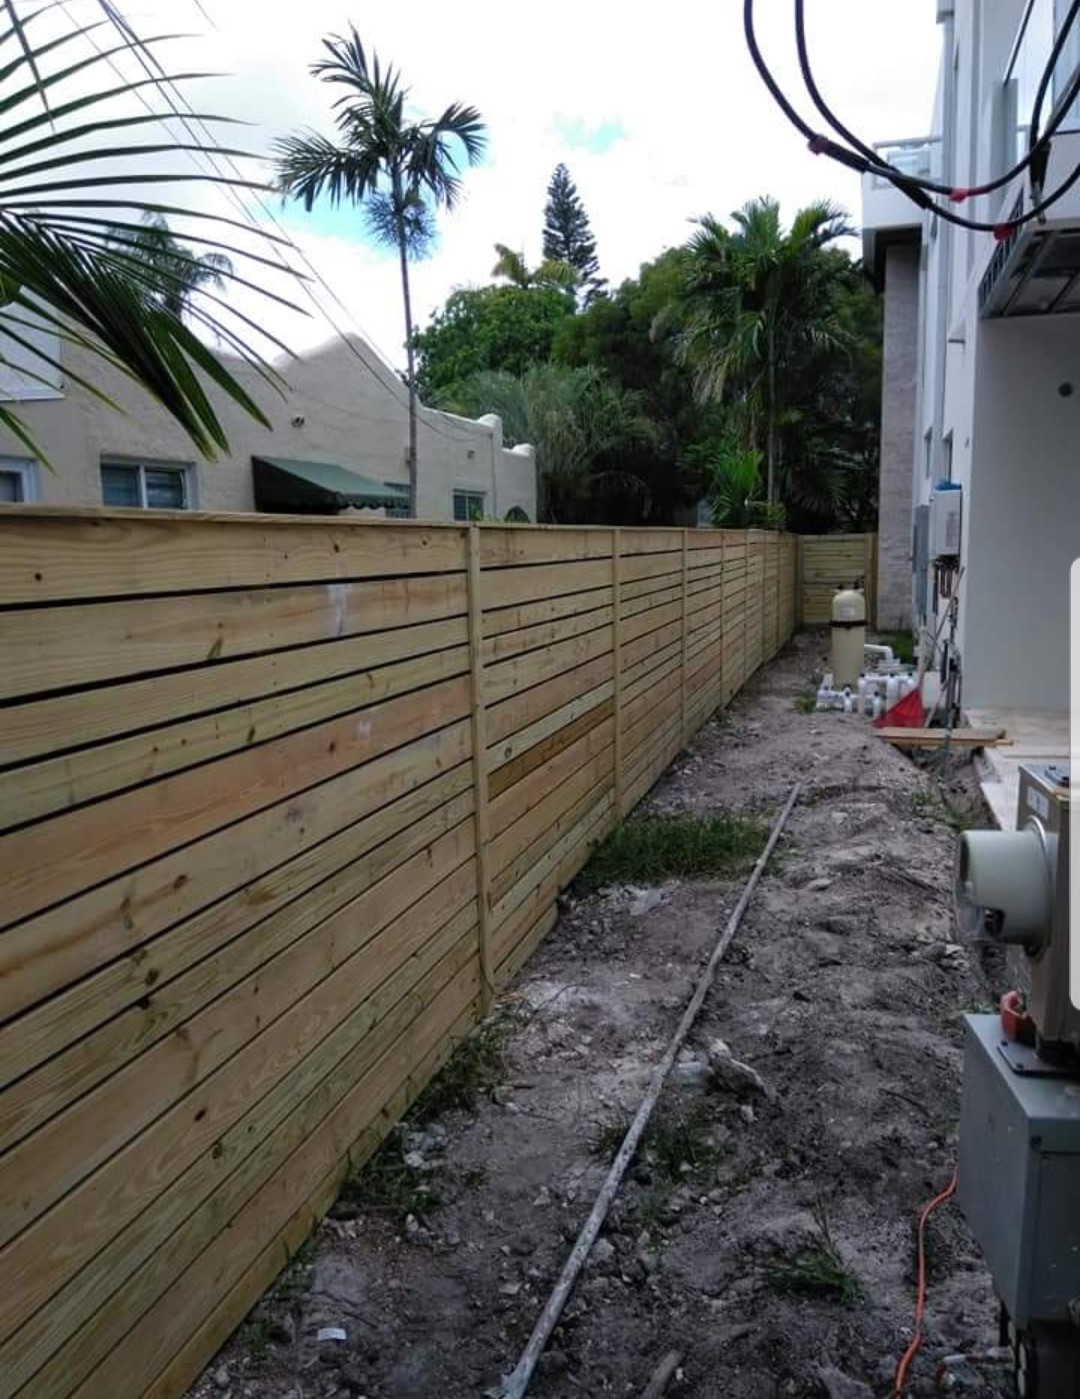 Backyard Fence Styles Installation In Coconut Creek Fl Backyard intended for Backyard Fence Company